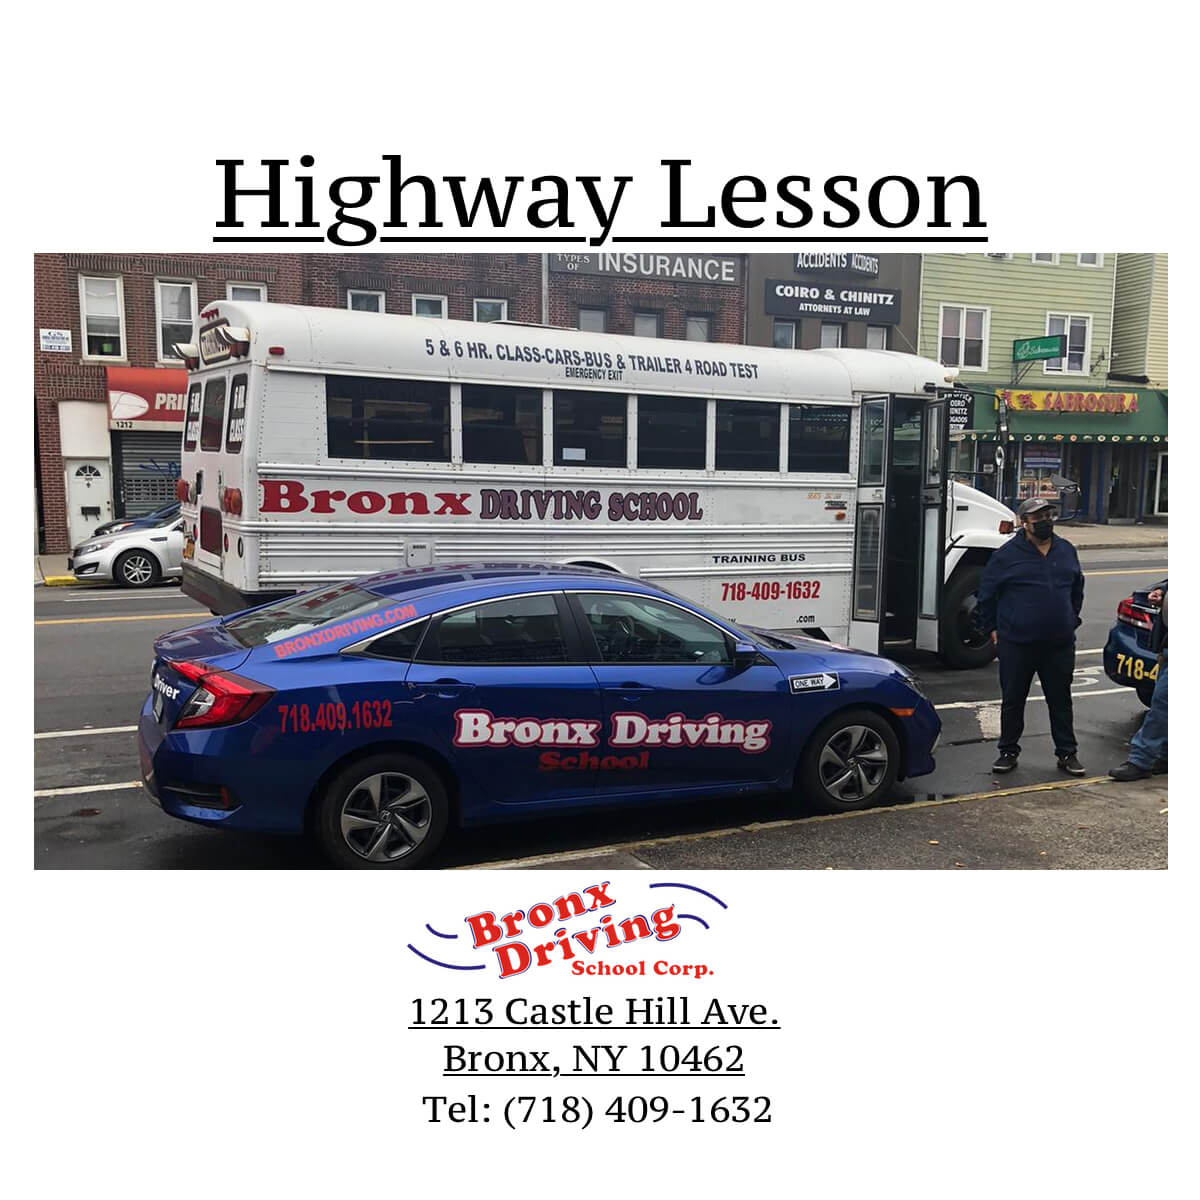 Bronx Driving School Highway Lesson